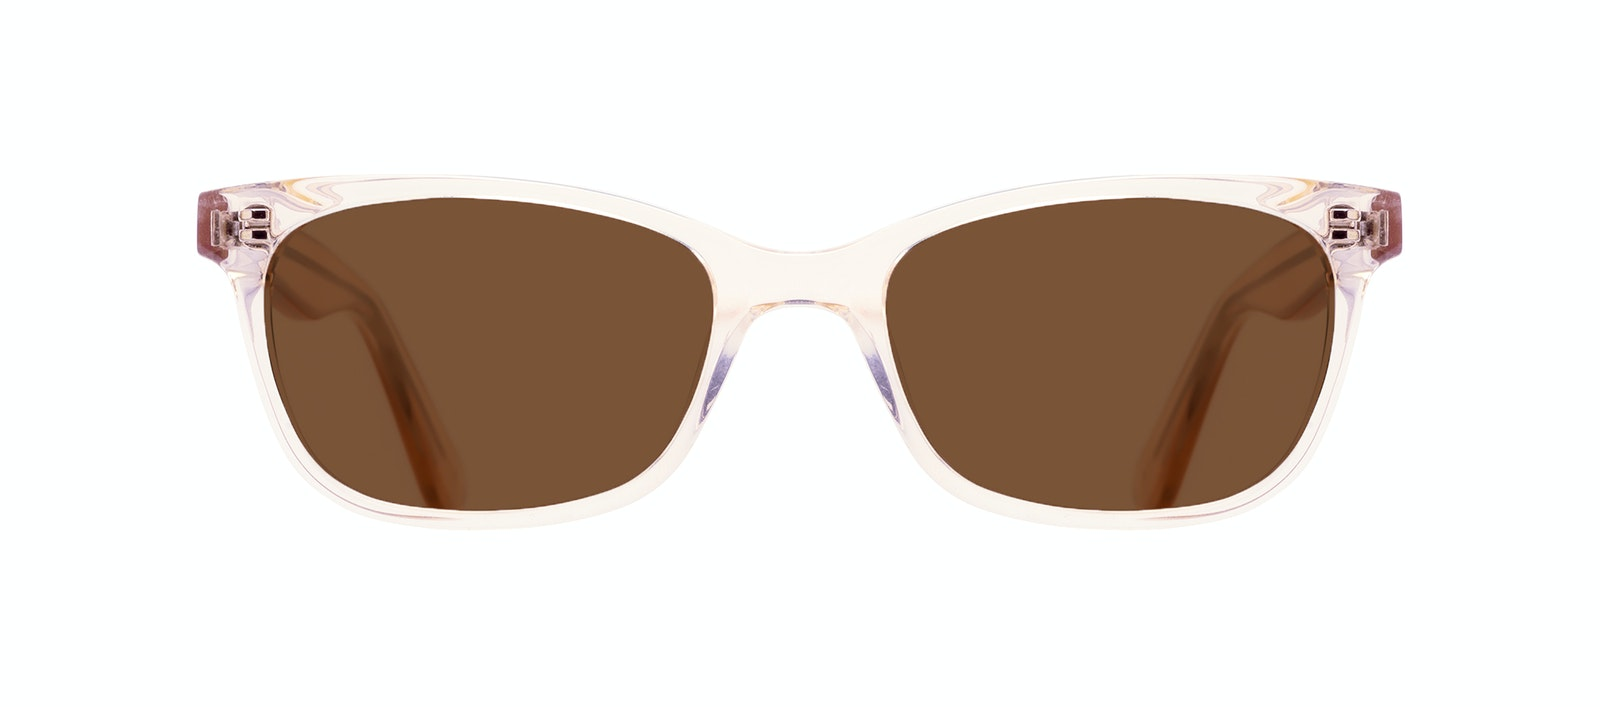 Affordable Fashion Glasses Cat Eye Rectangle Square Sunglasses Women Comet Blond Front